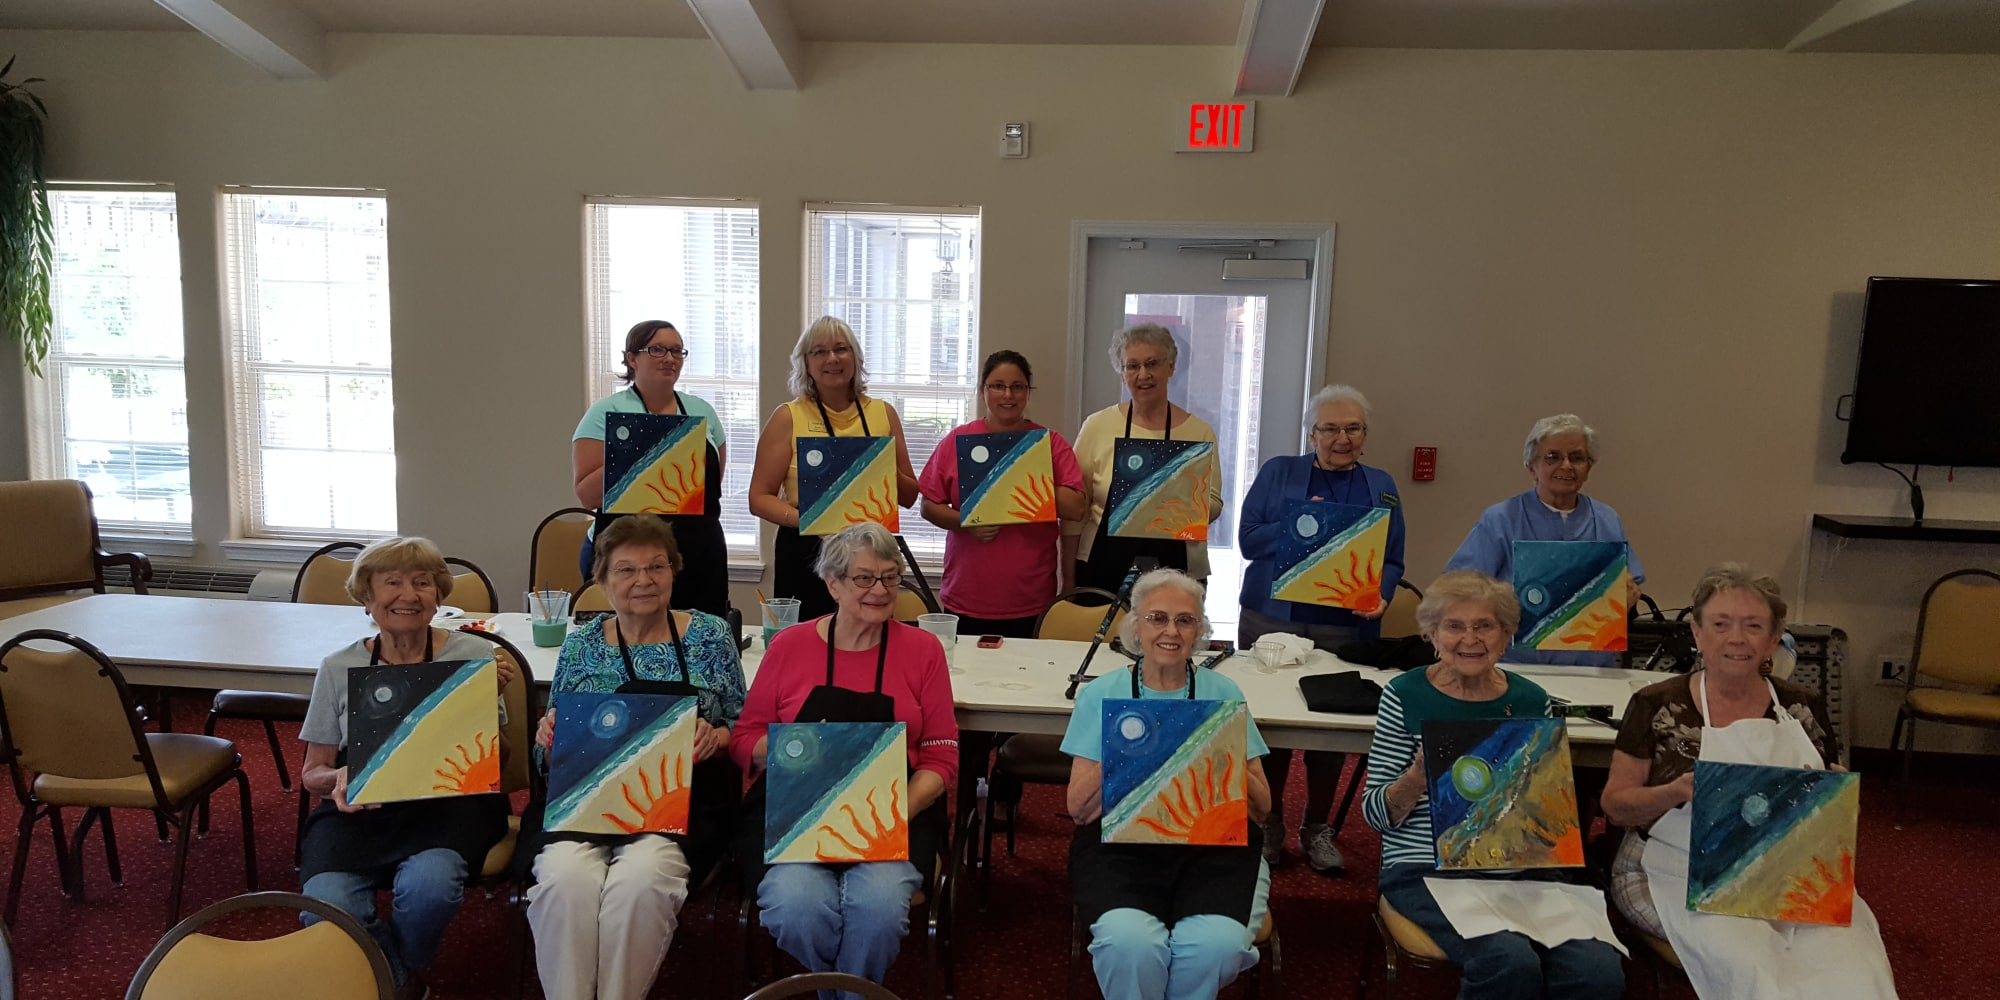 Residents holding their paintings at Summerville Estates Gracious Retirement Living in Summerville, South Carolina